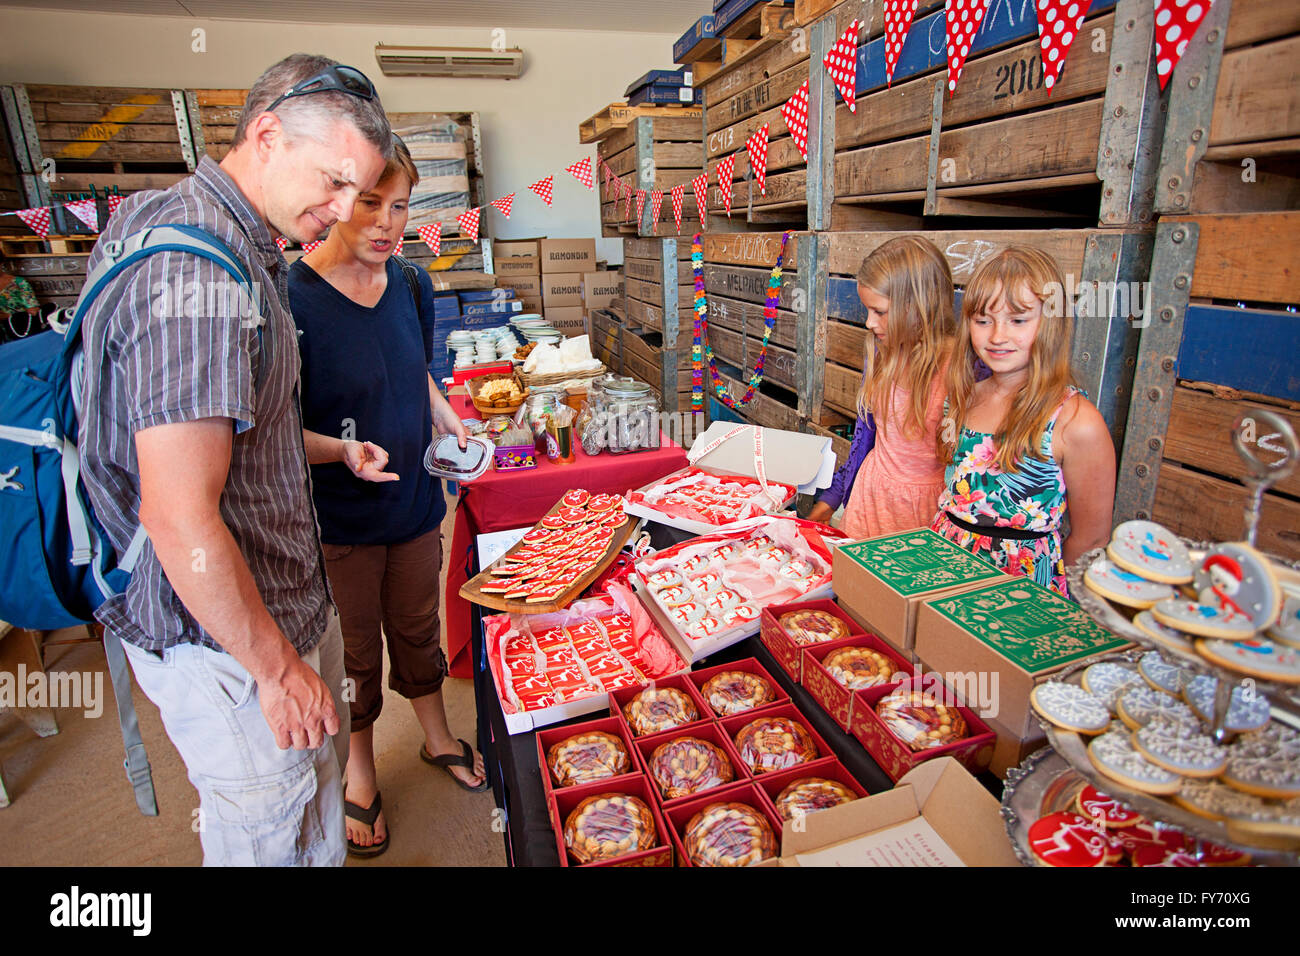 Husband and wife peruse wares at a food market - Stock Image